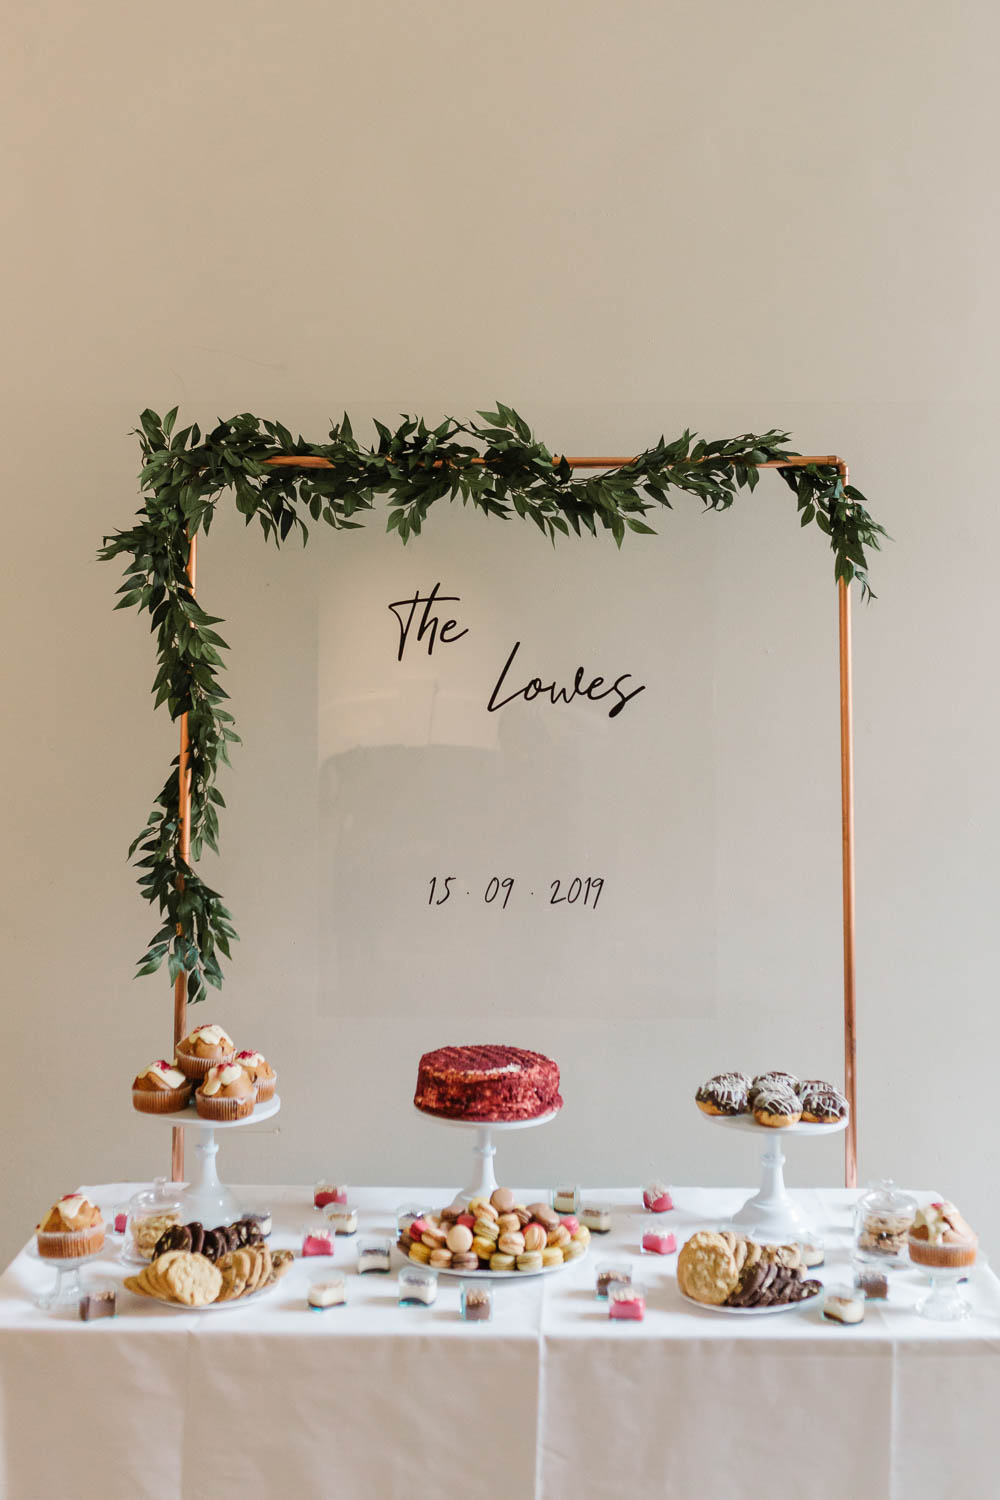 Cake Table Dessert Backdrop Sign Signs Signage Perspex Acrylic Compton Verney Wedding Danielle Smith Photography